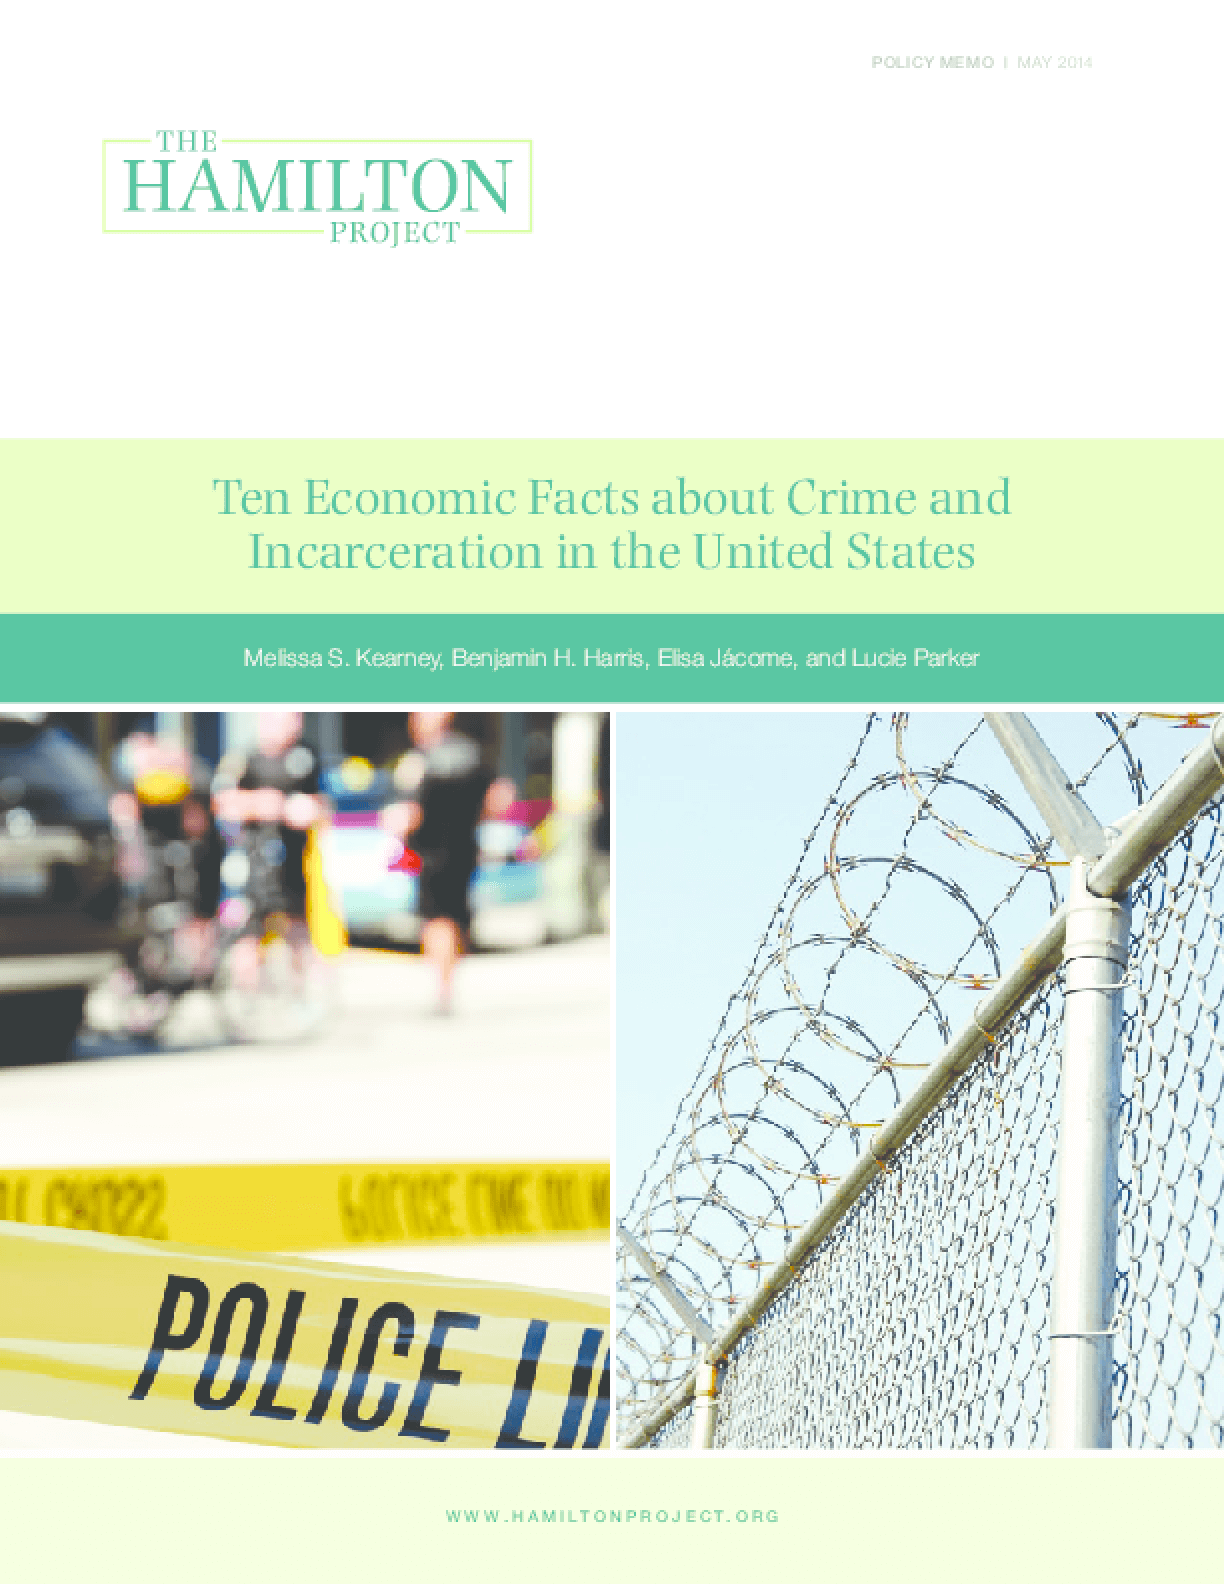 Ten Economic Facts About Crime and Incarceration in the United States